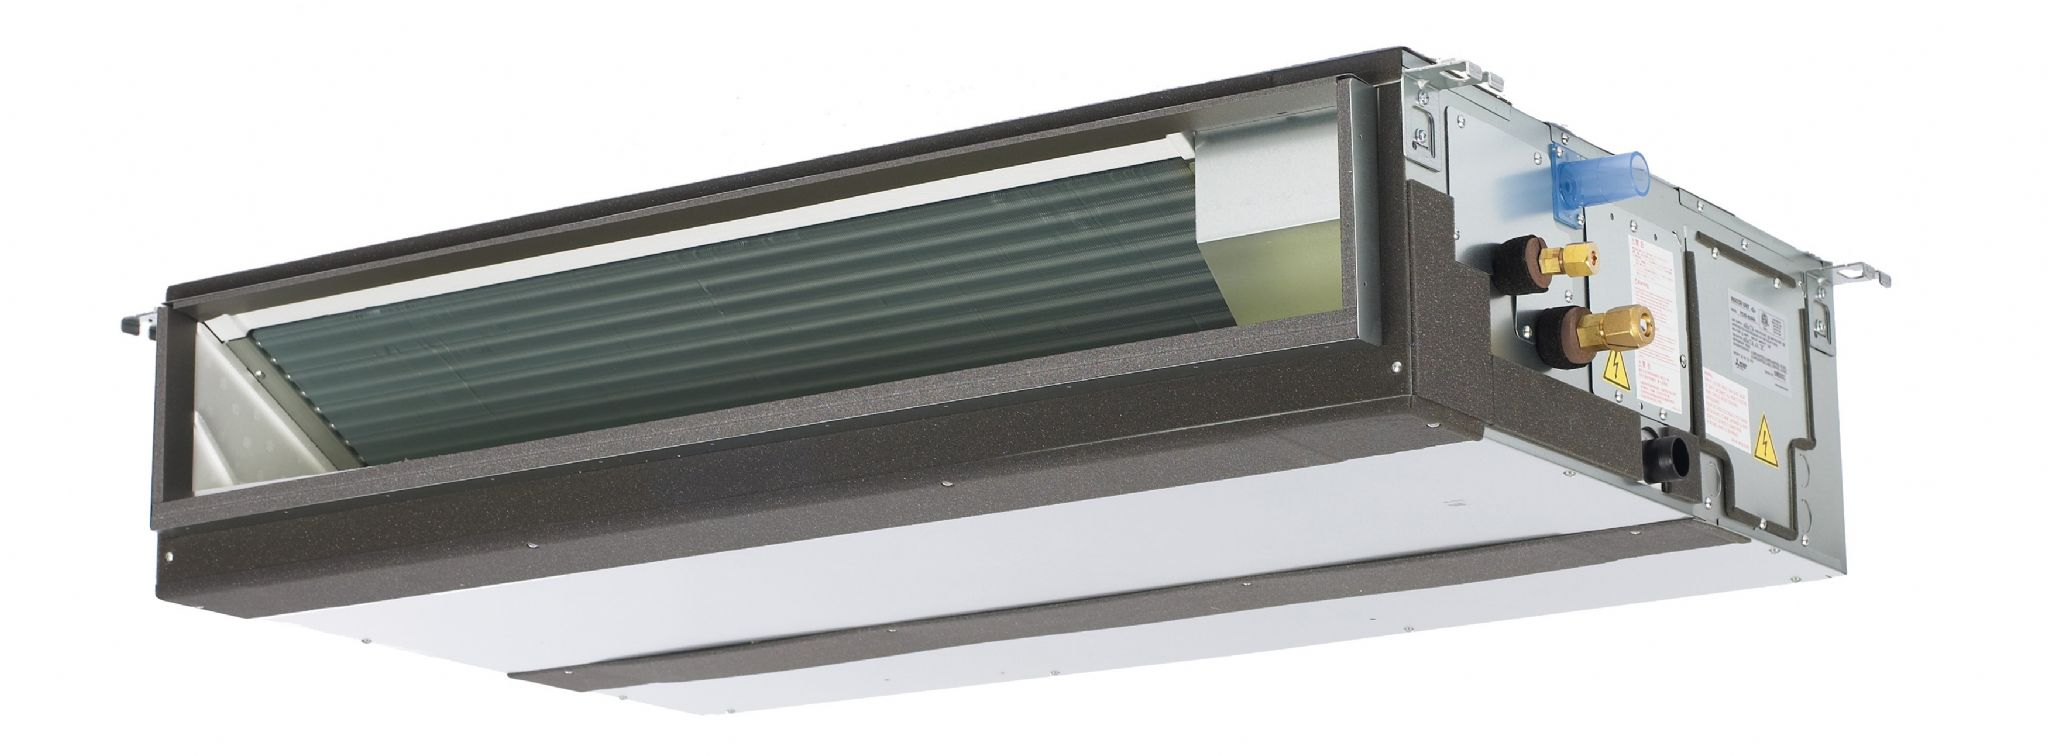 Mitsubishi Electric Air Conditioning Pead M50ja Ducted